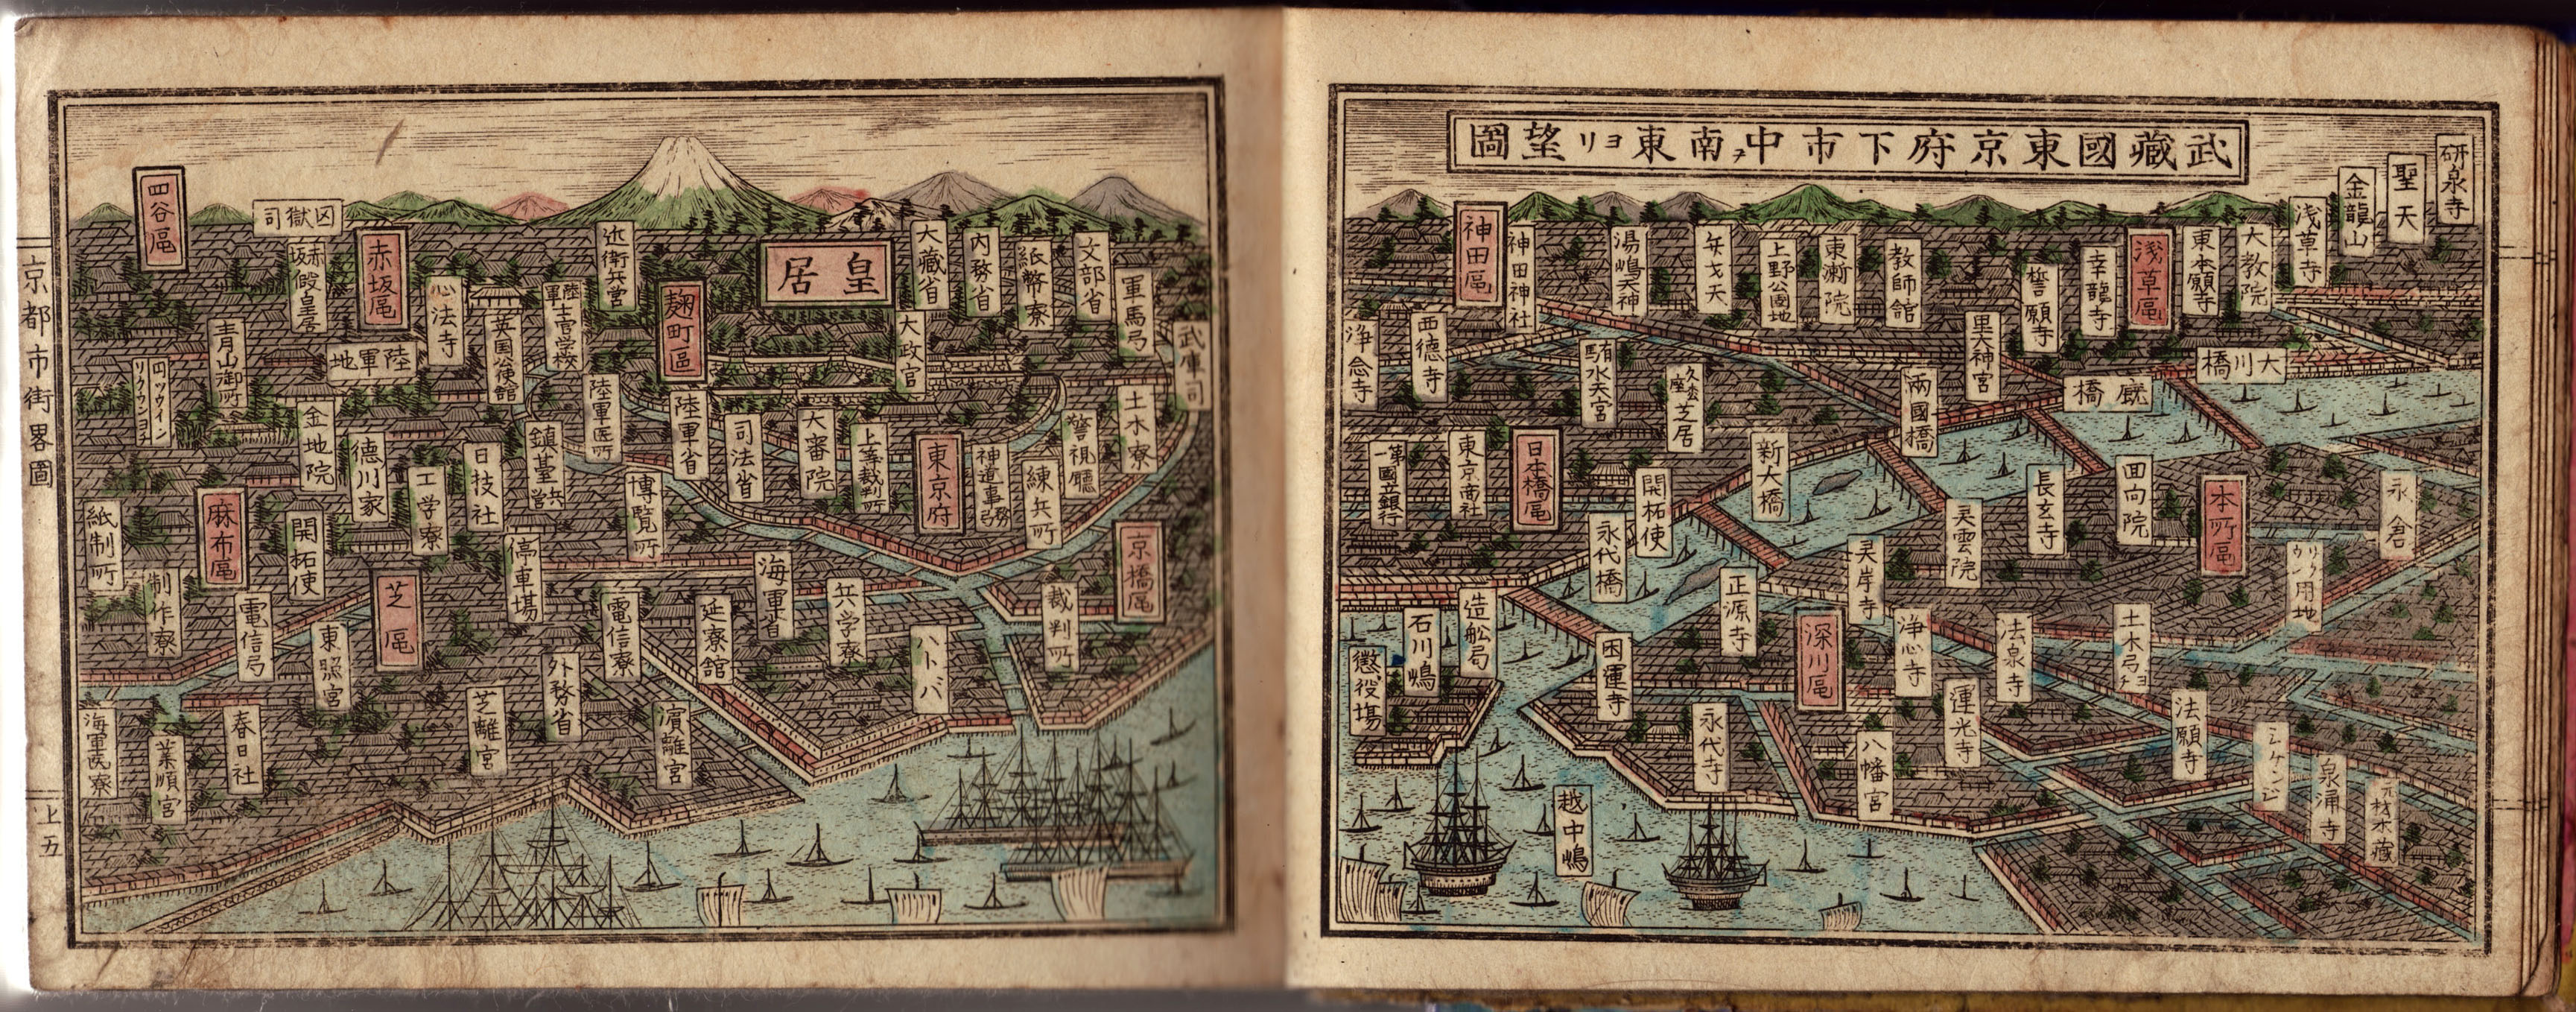 Asia Historical Maps PerryCastañeda Map Collection UT Library - 19th century japanese map of us